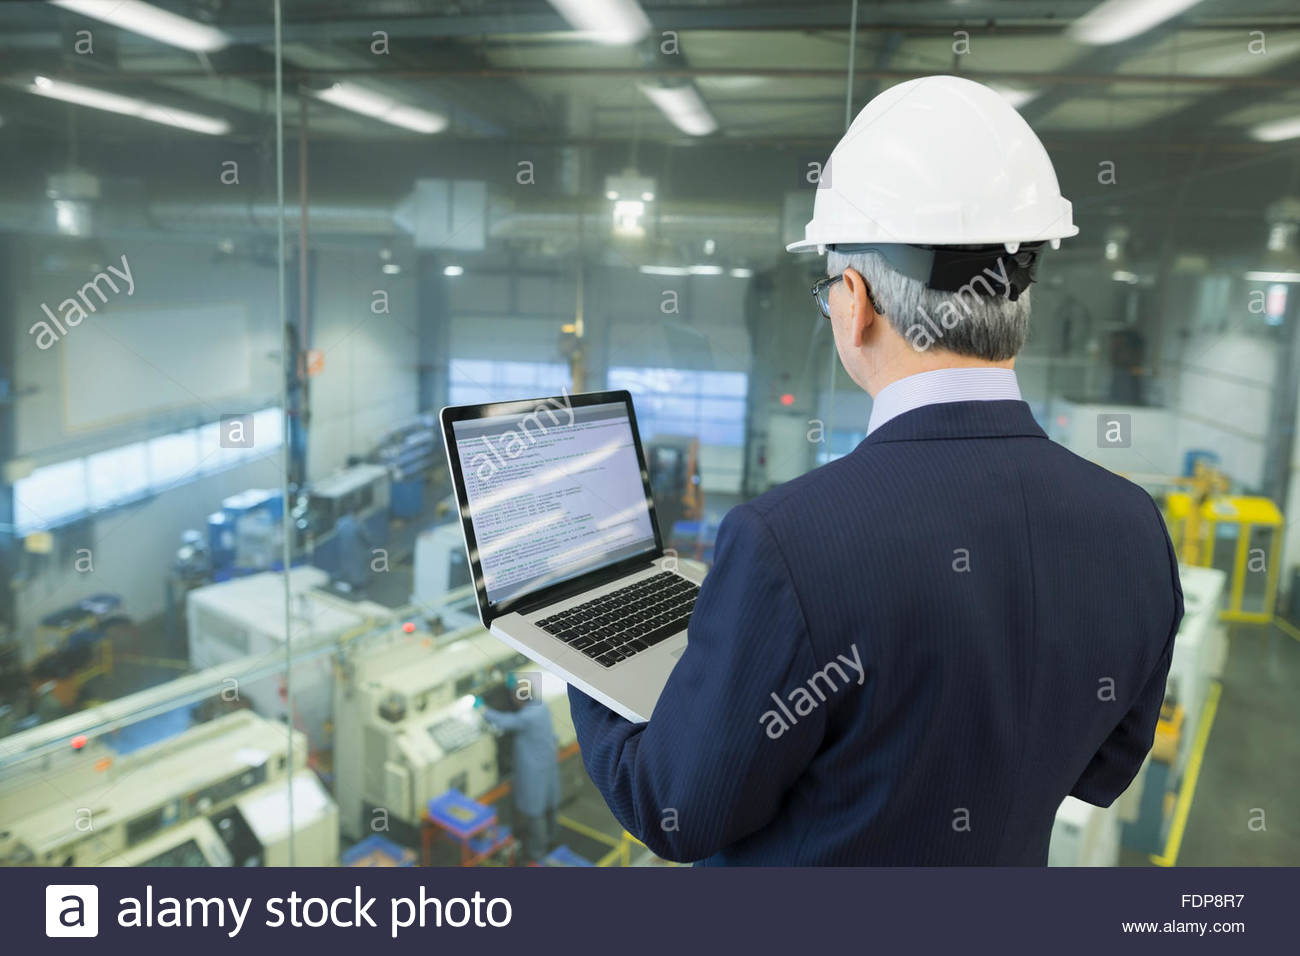 Manager with laptop looking out window onto factory - Stock Image